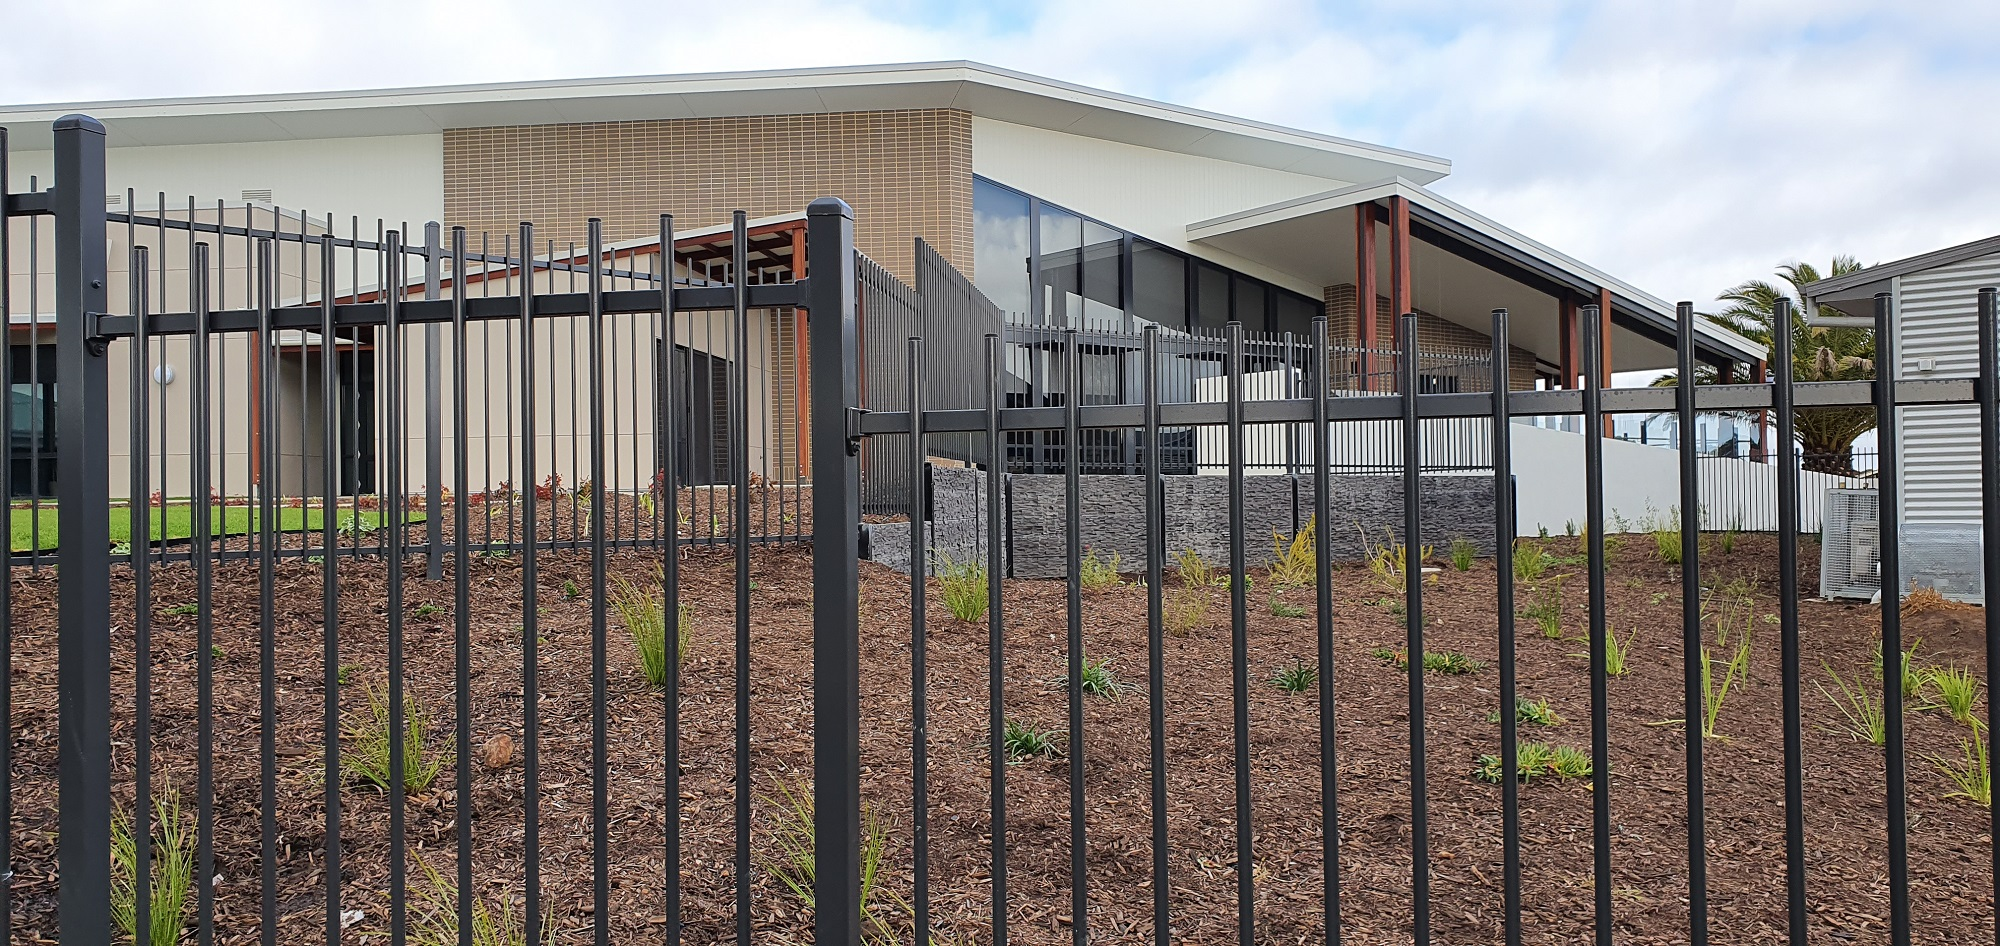 Commercial Fencing Adelaide Fence Centre Retirement Village Boundary Fencing 3